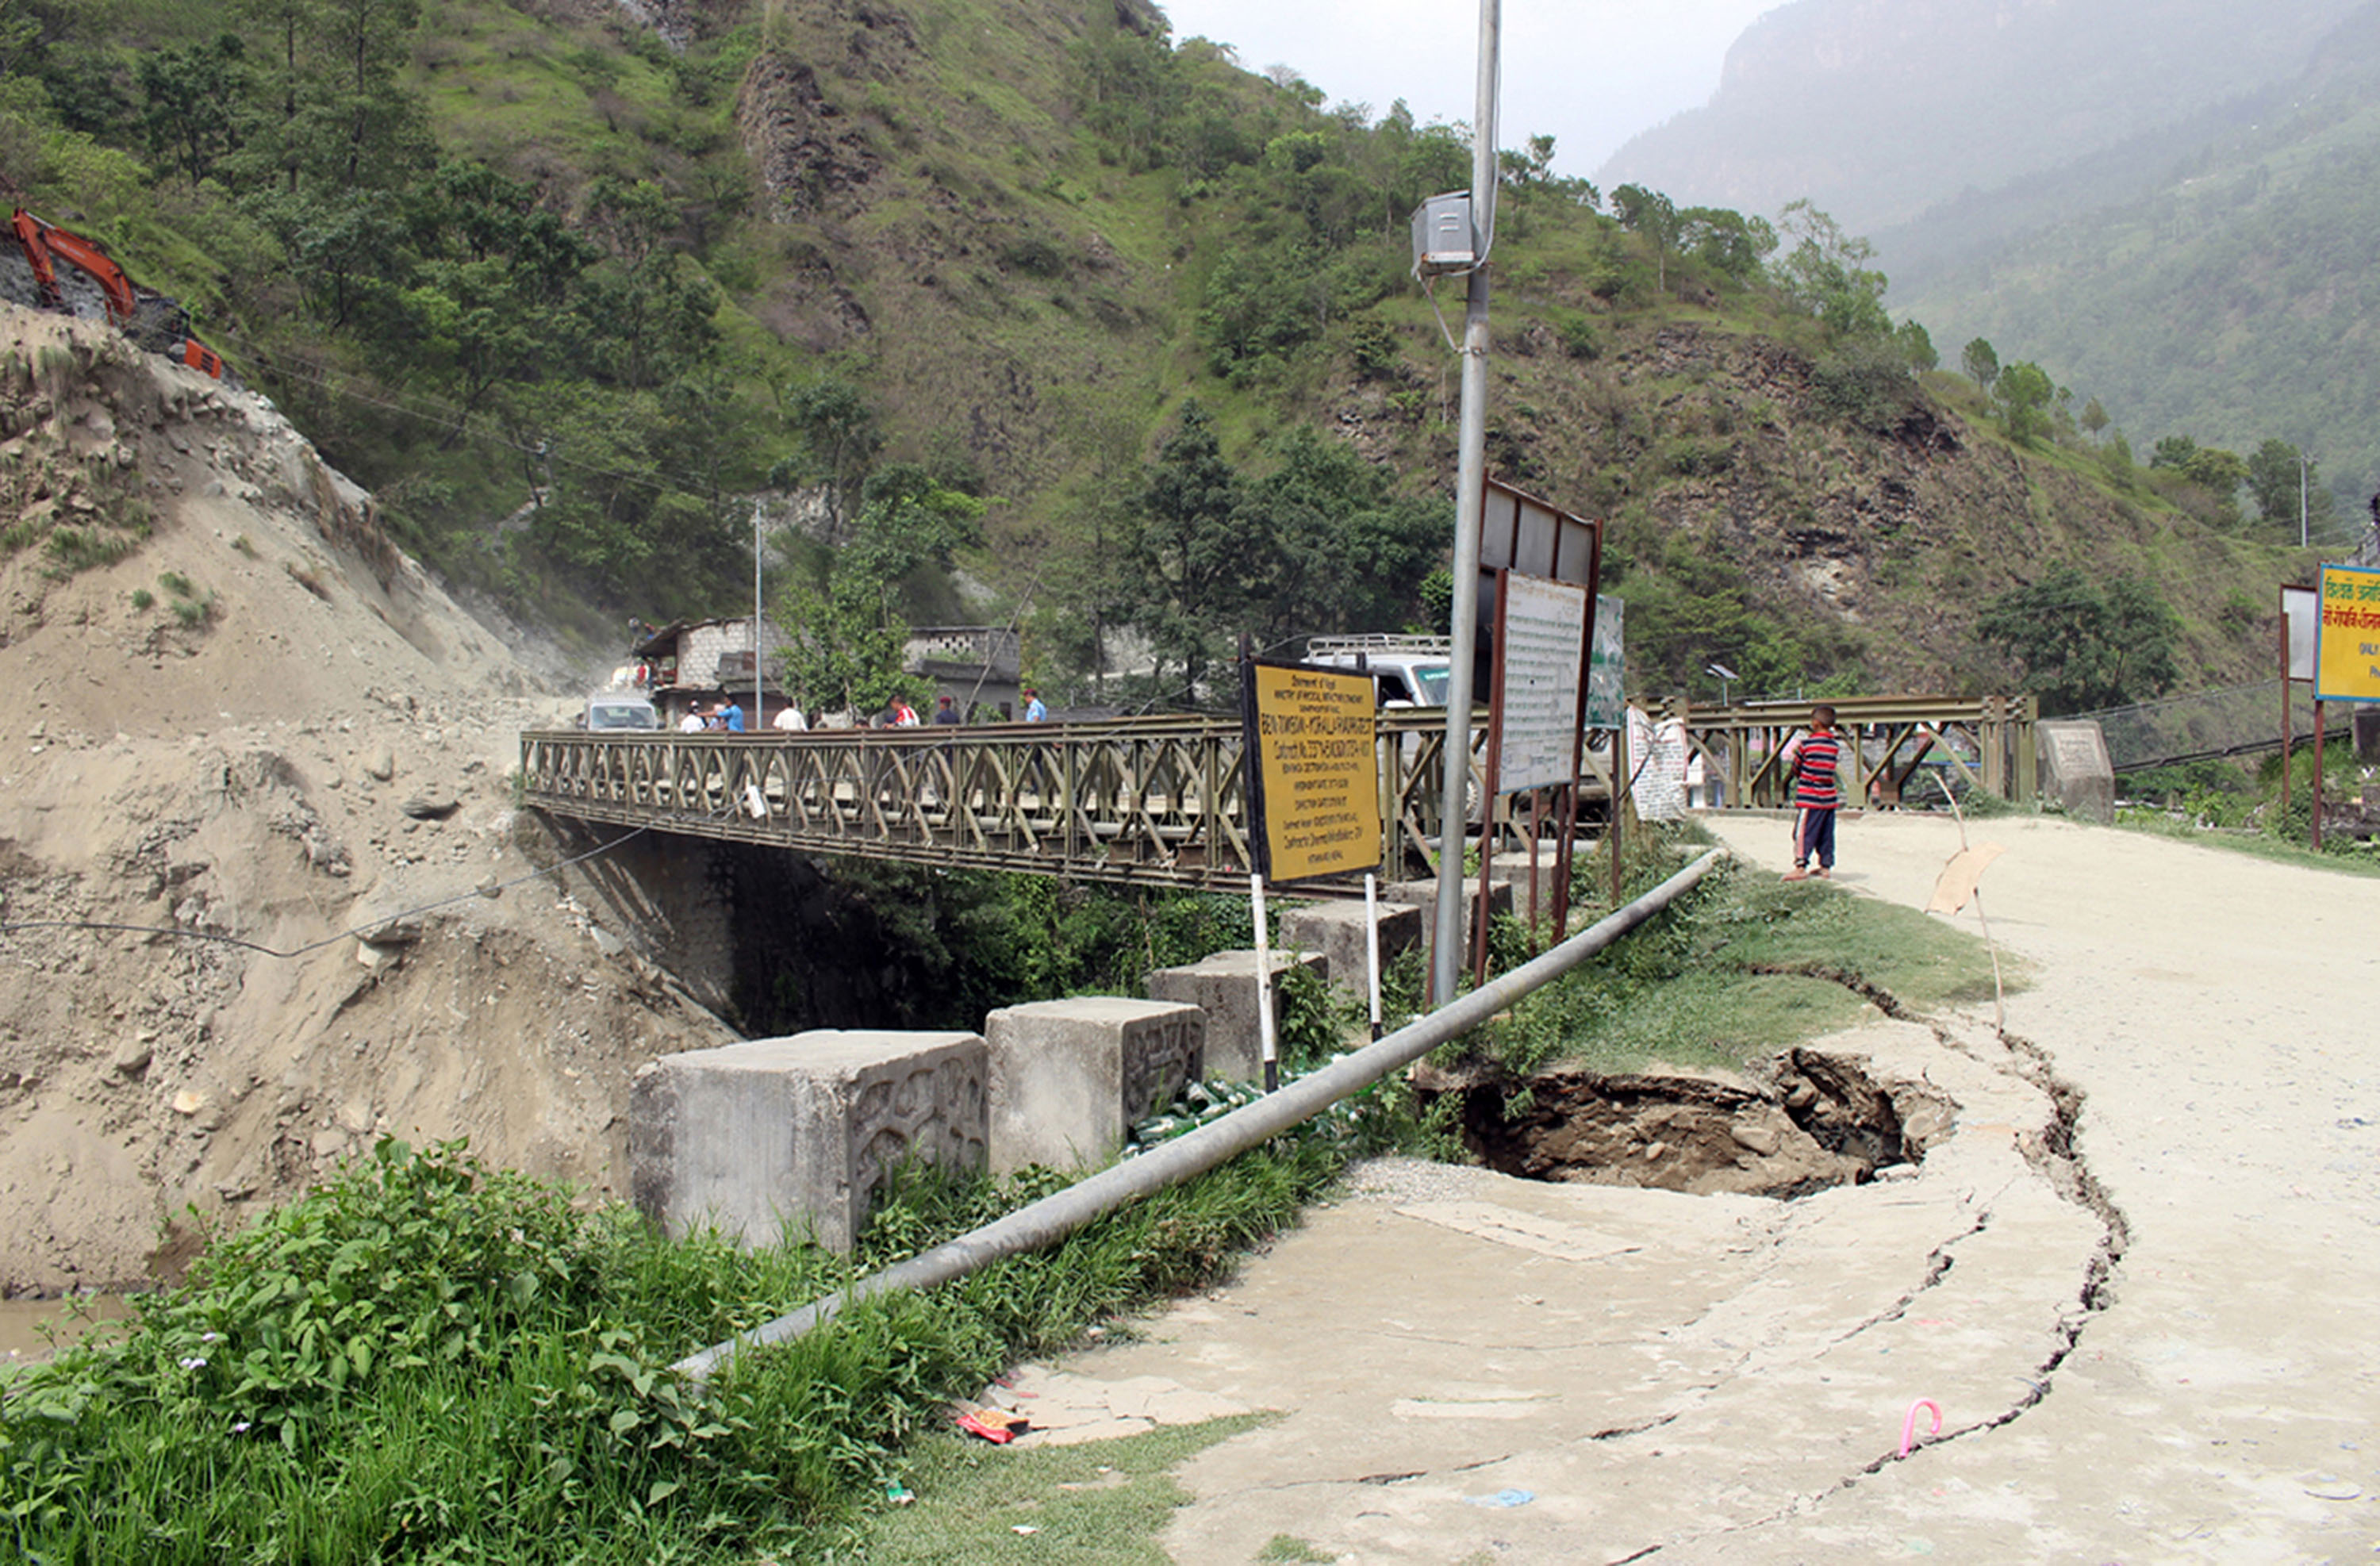 Bailey bridge facing collapse as road sinks